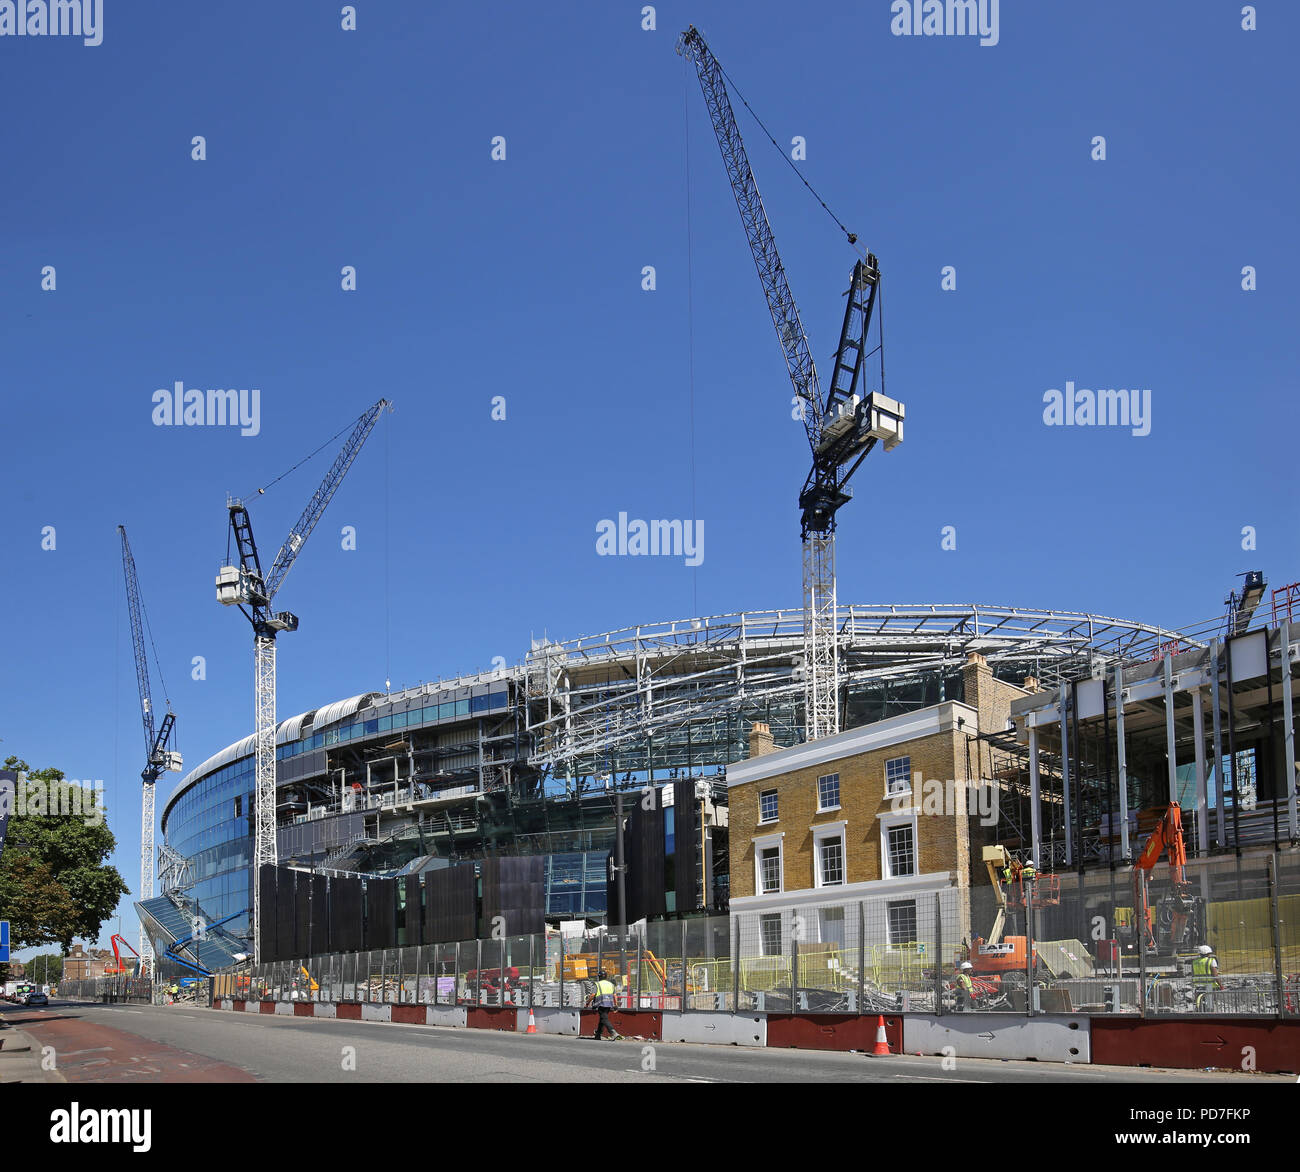 Construction of England premier league team Tottenham Hotspur's new 62,000 seat stadium at White Hart Lane, London. Nearing completion (Aug 2018). - Stock Image